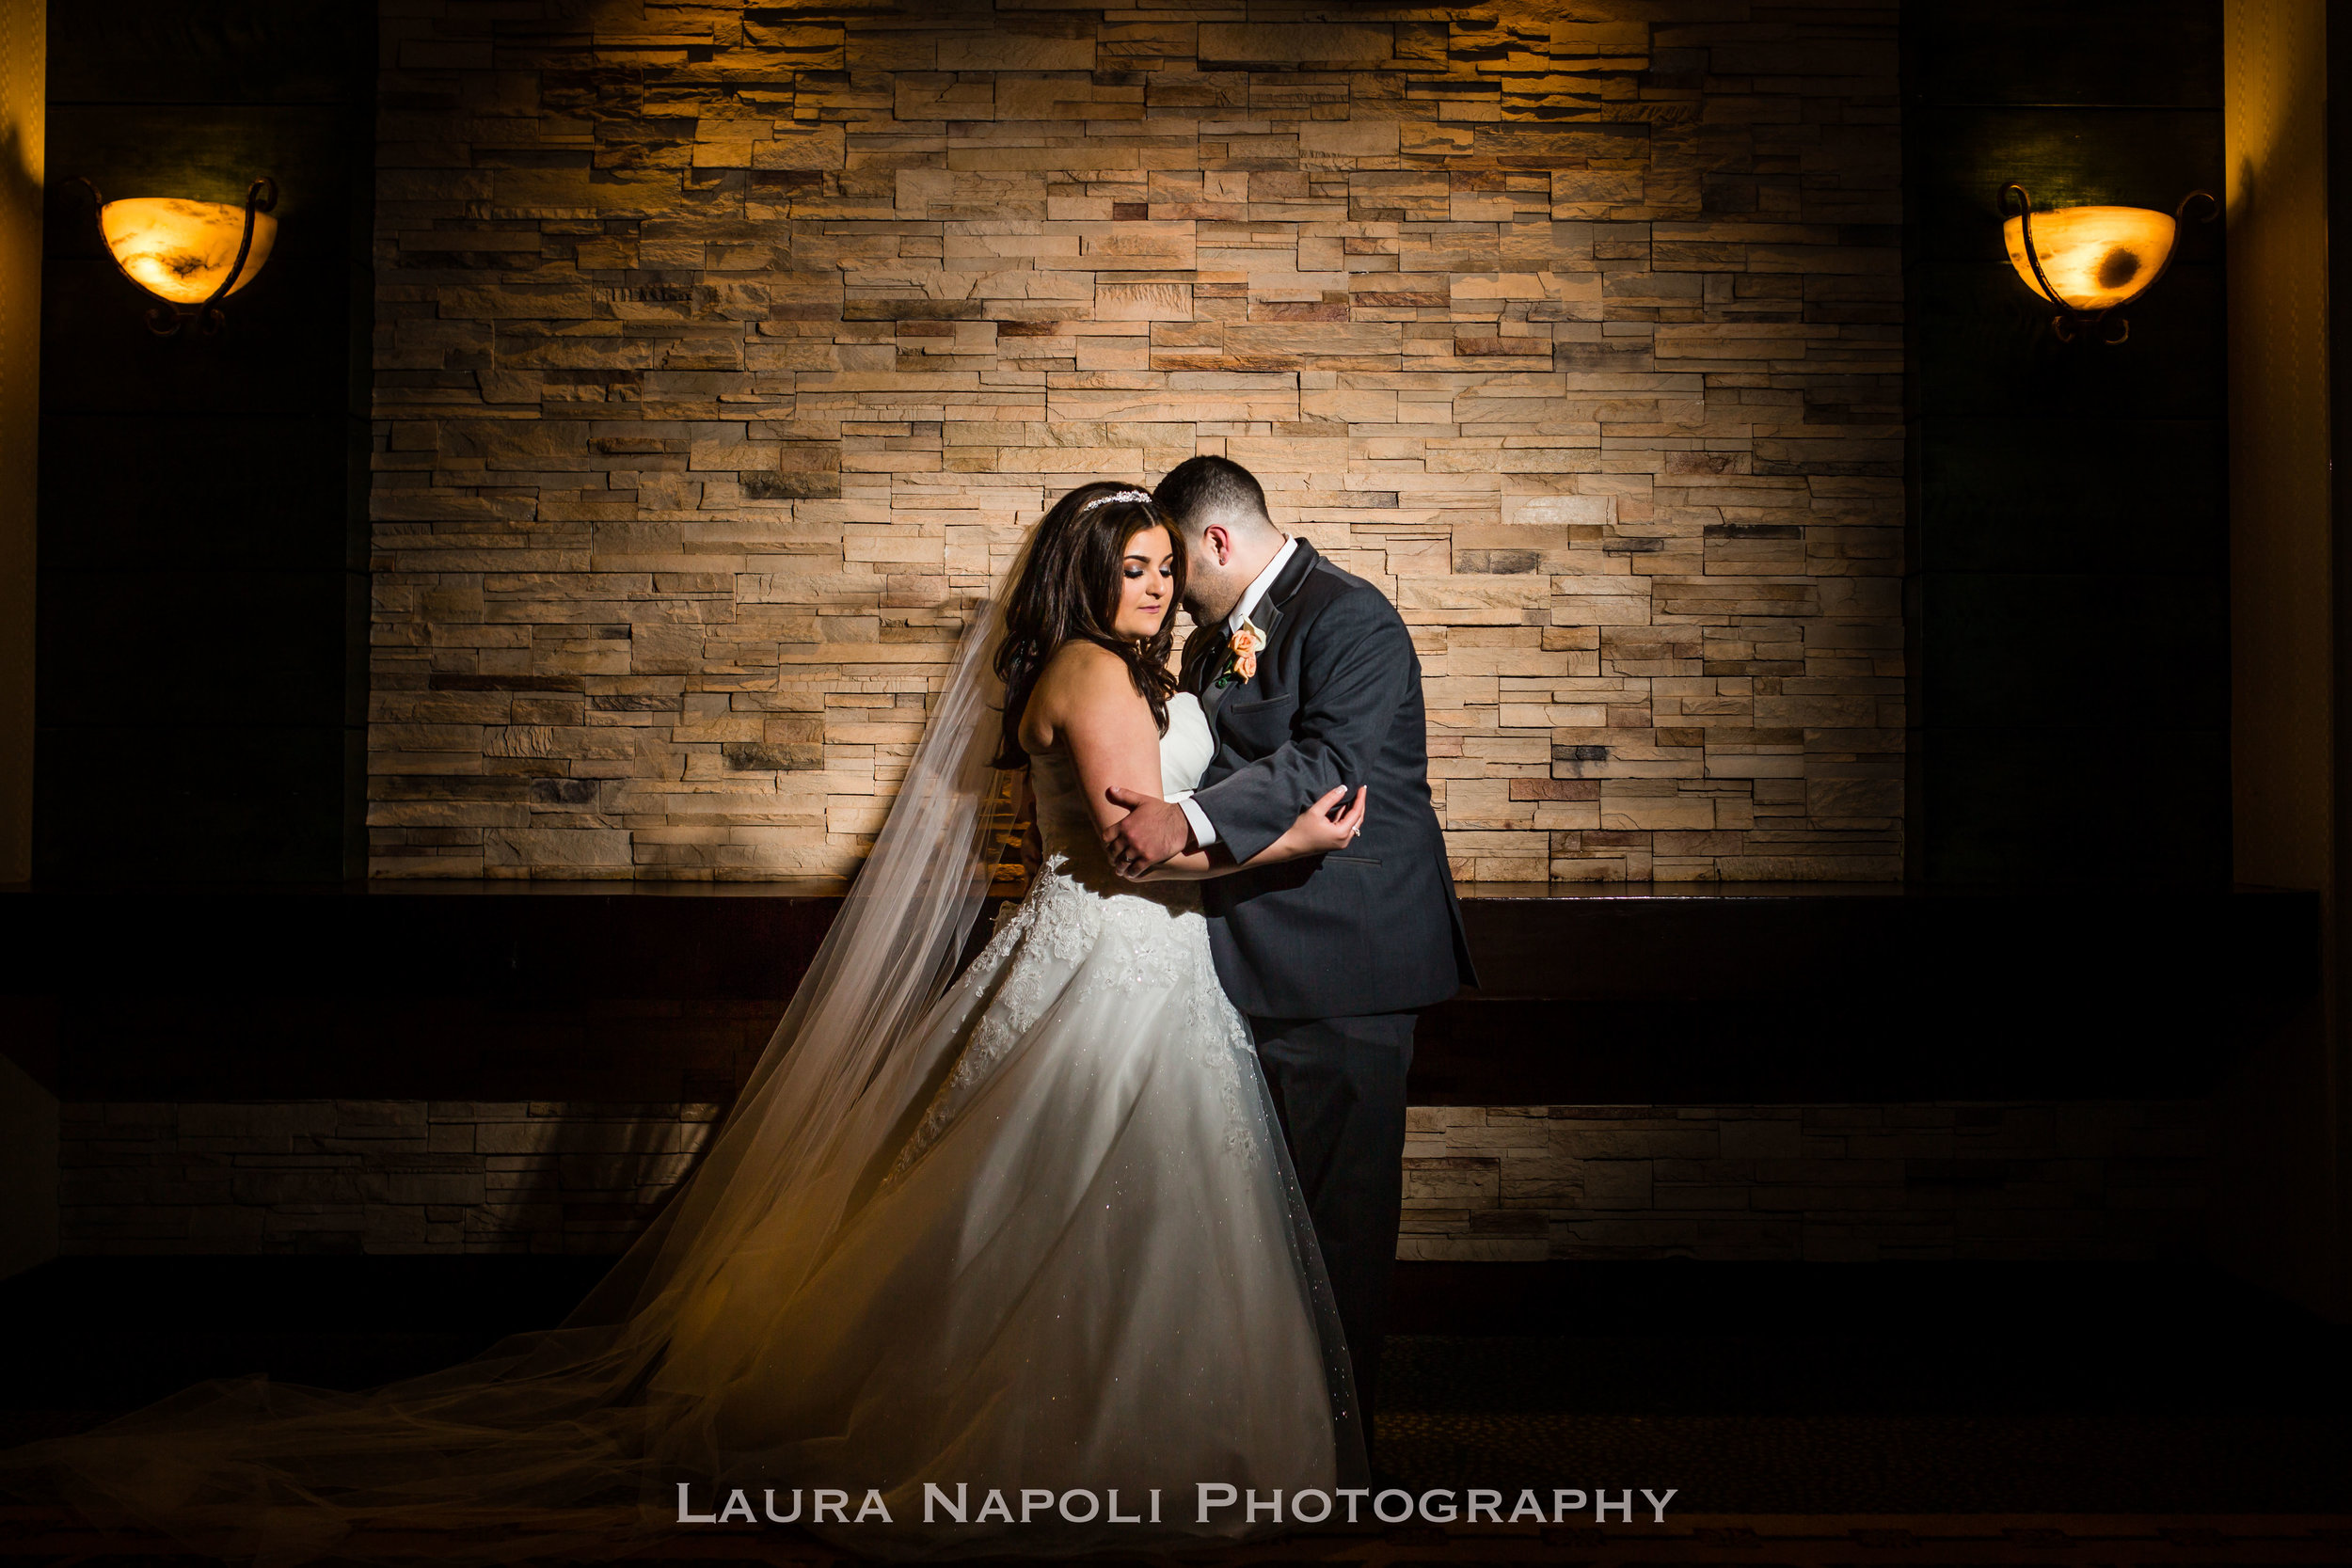 crowneplazacherryhillnjweddingphotographer-25.jpg